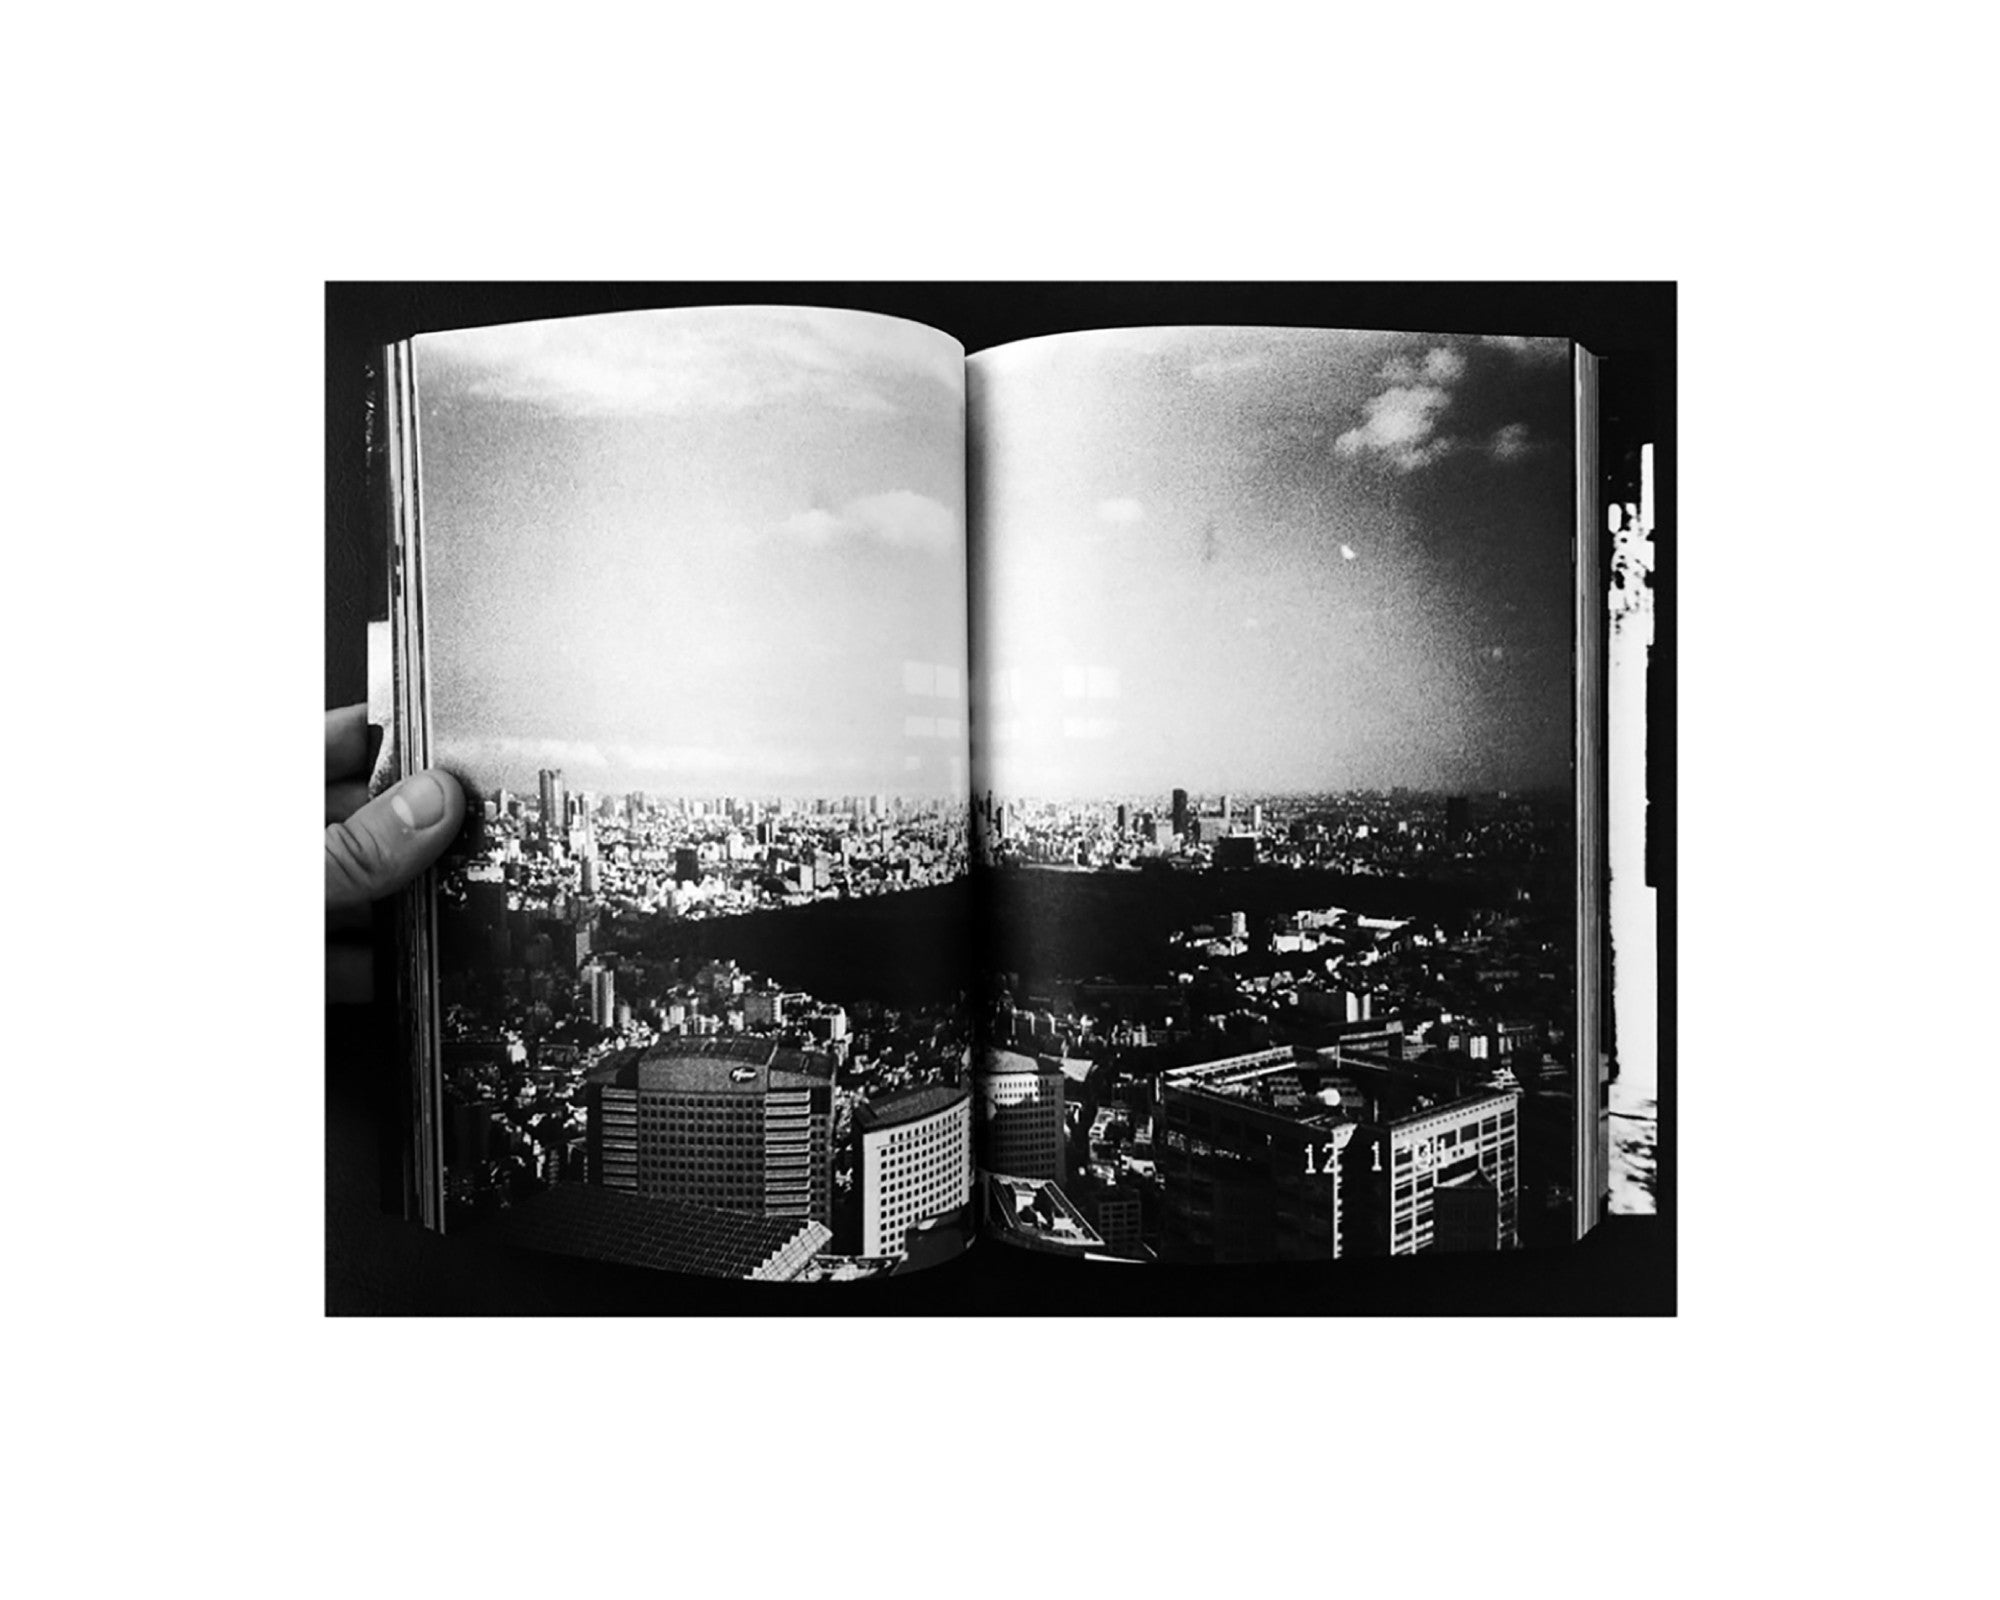 TOKYO DIARIES by André Príncipe & Marco Martins [SIGNED]